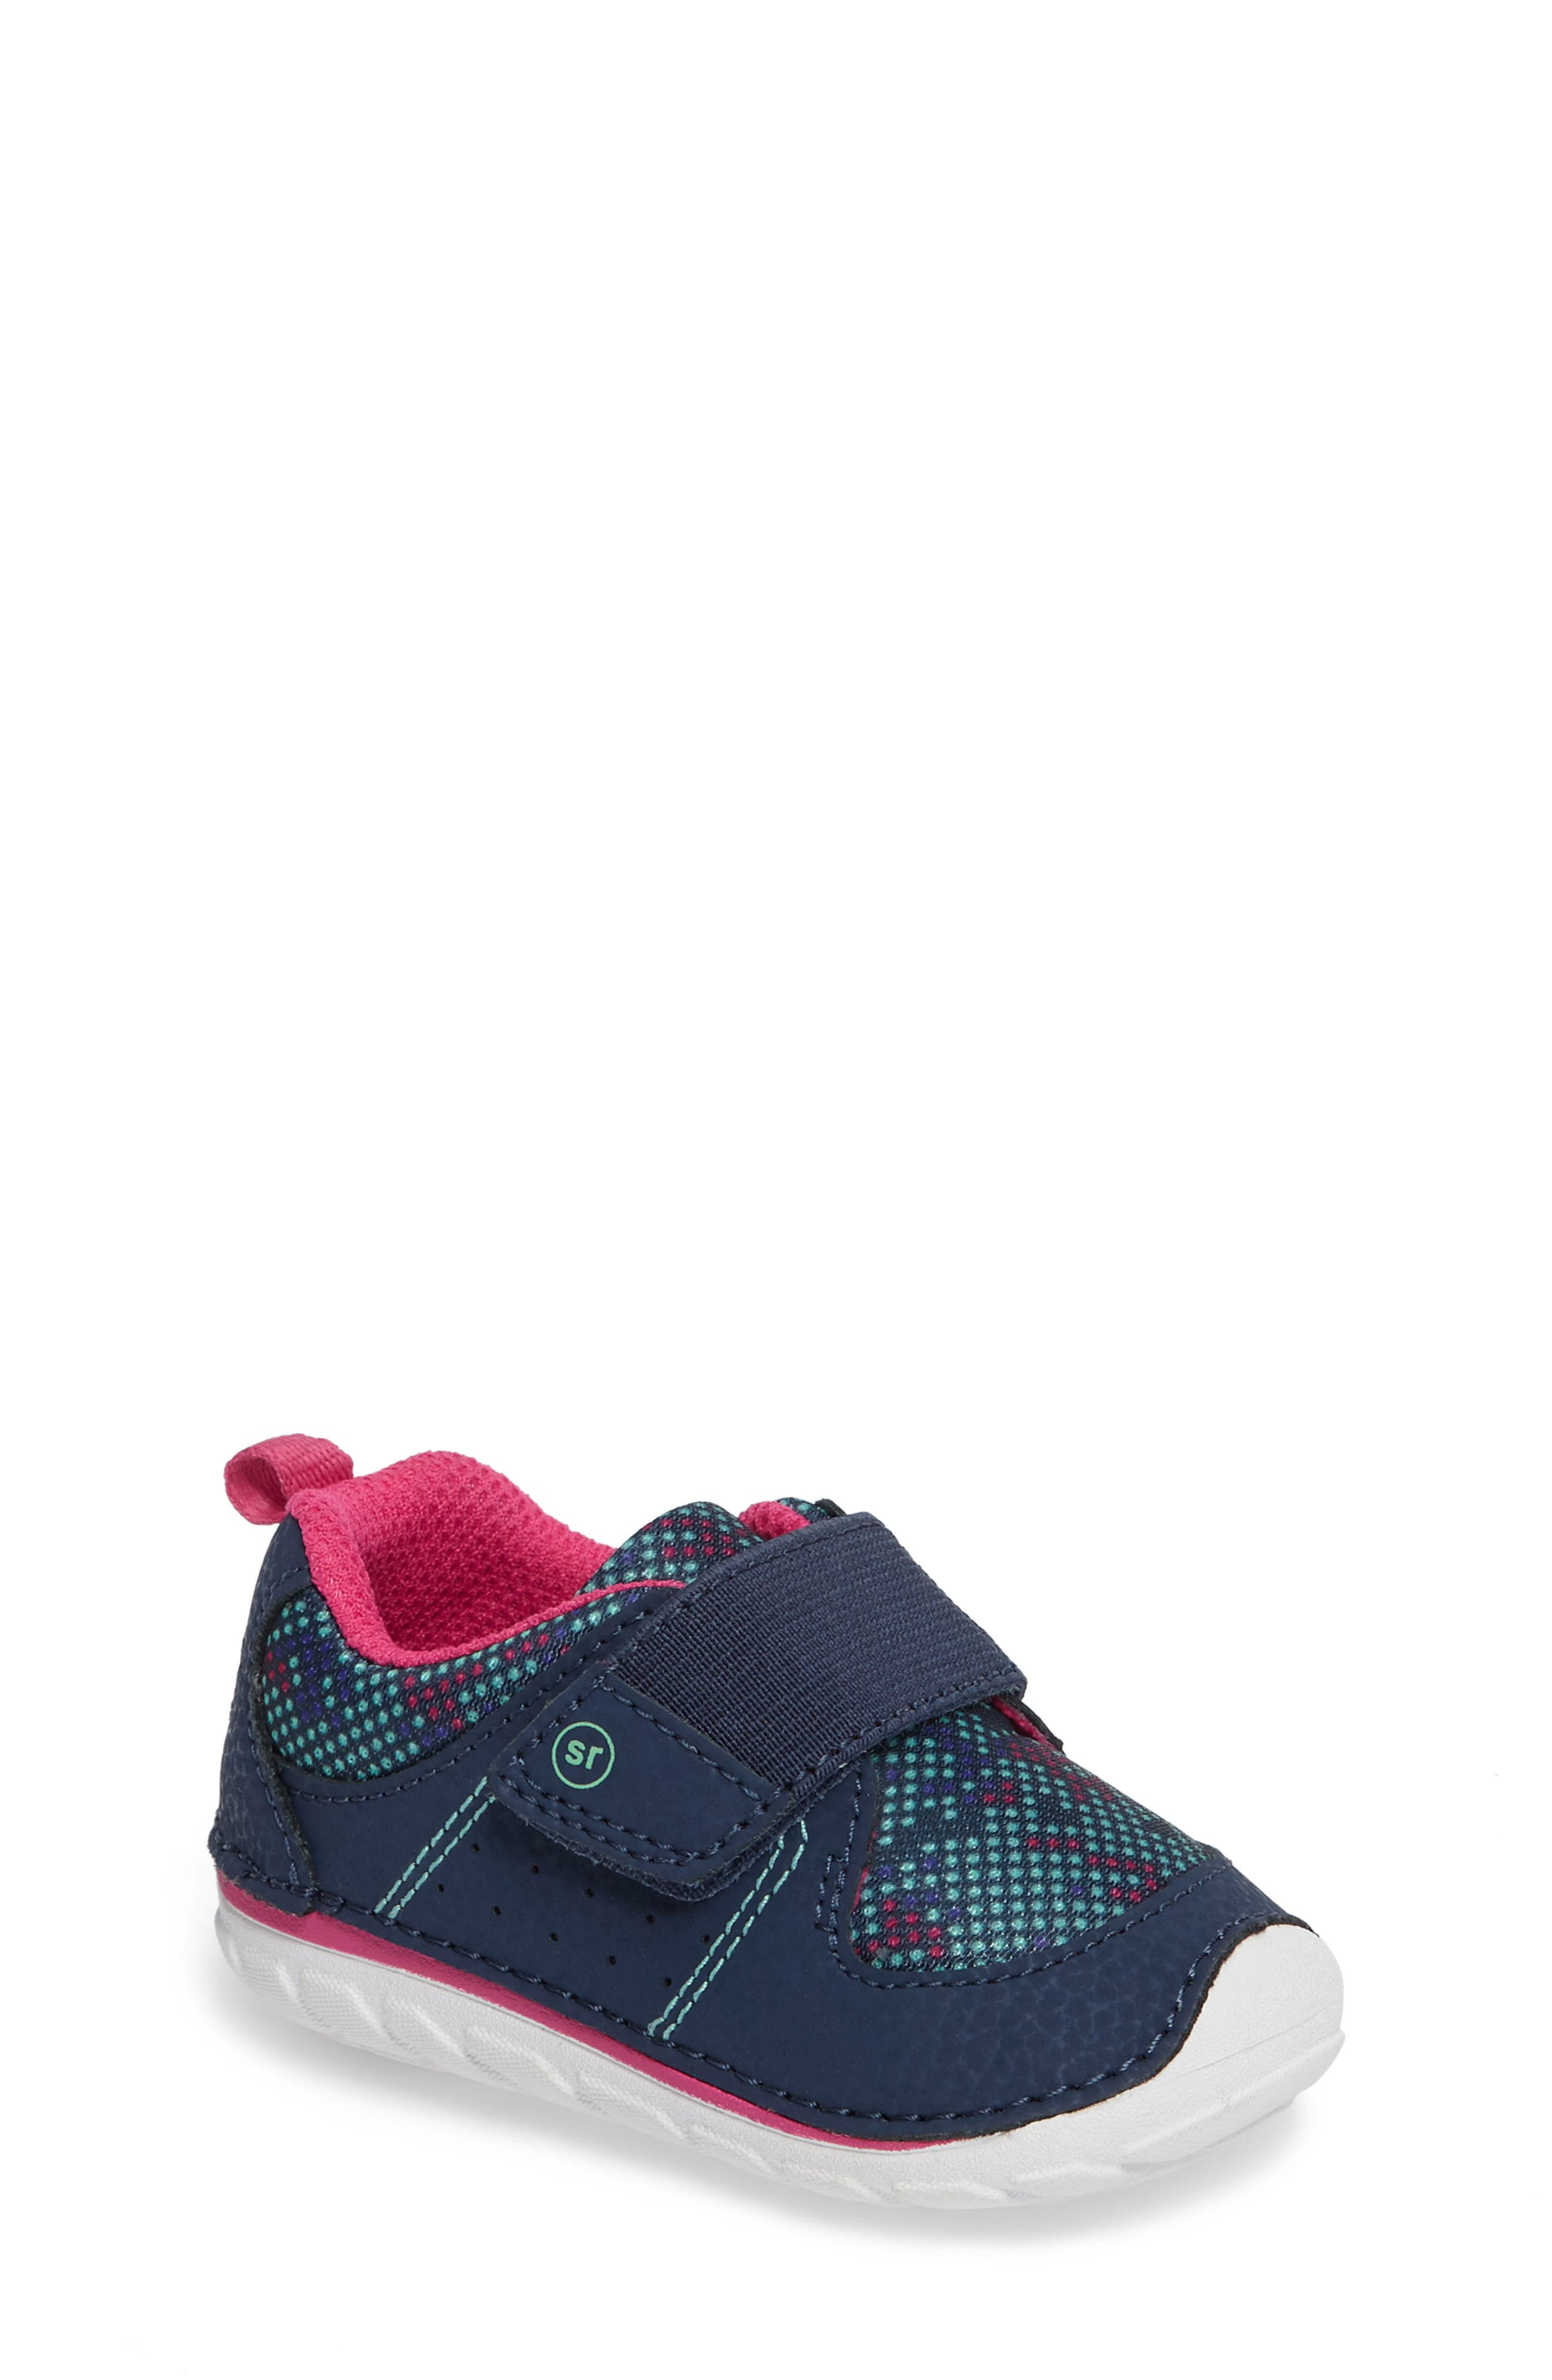 Soft Motion<sup>™</sup> Ripley Sneaker,                         Main,                         color, 410